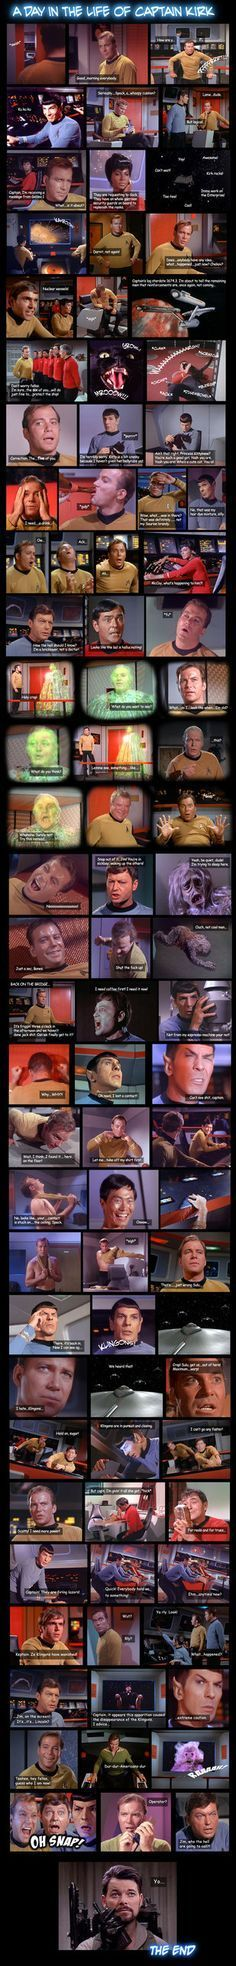 """The newest in my Star Trek photo comic series. This time it's up to Kirk & Co! The people who did read my other comics know which """"mystery"""" character will make another guest appearance. My God,..."""